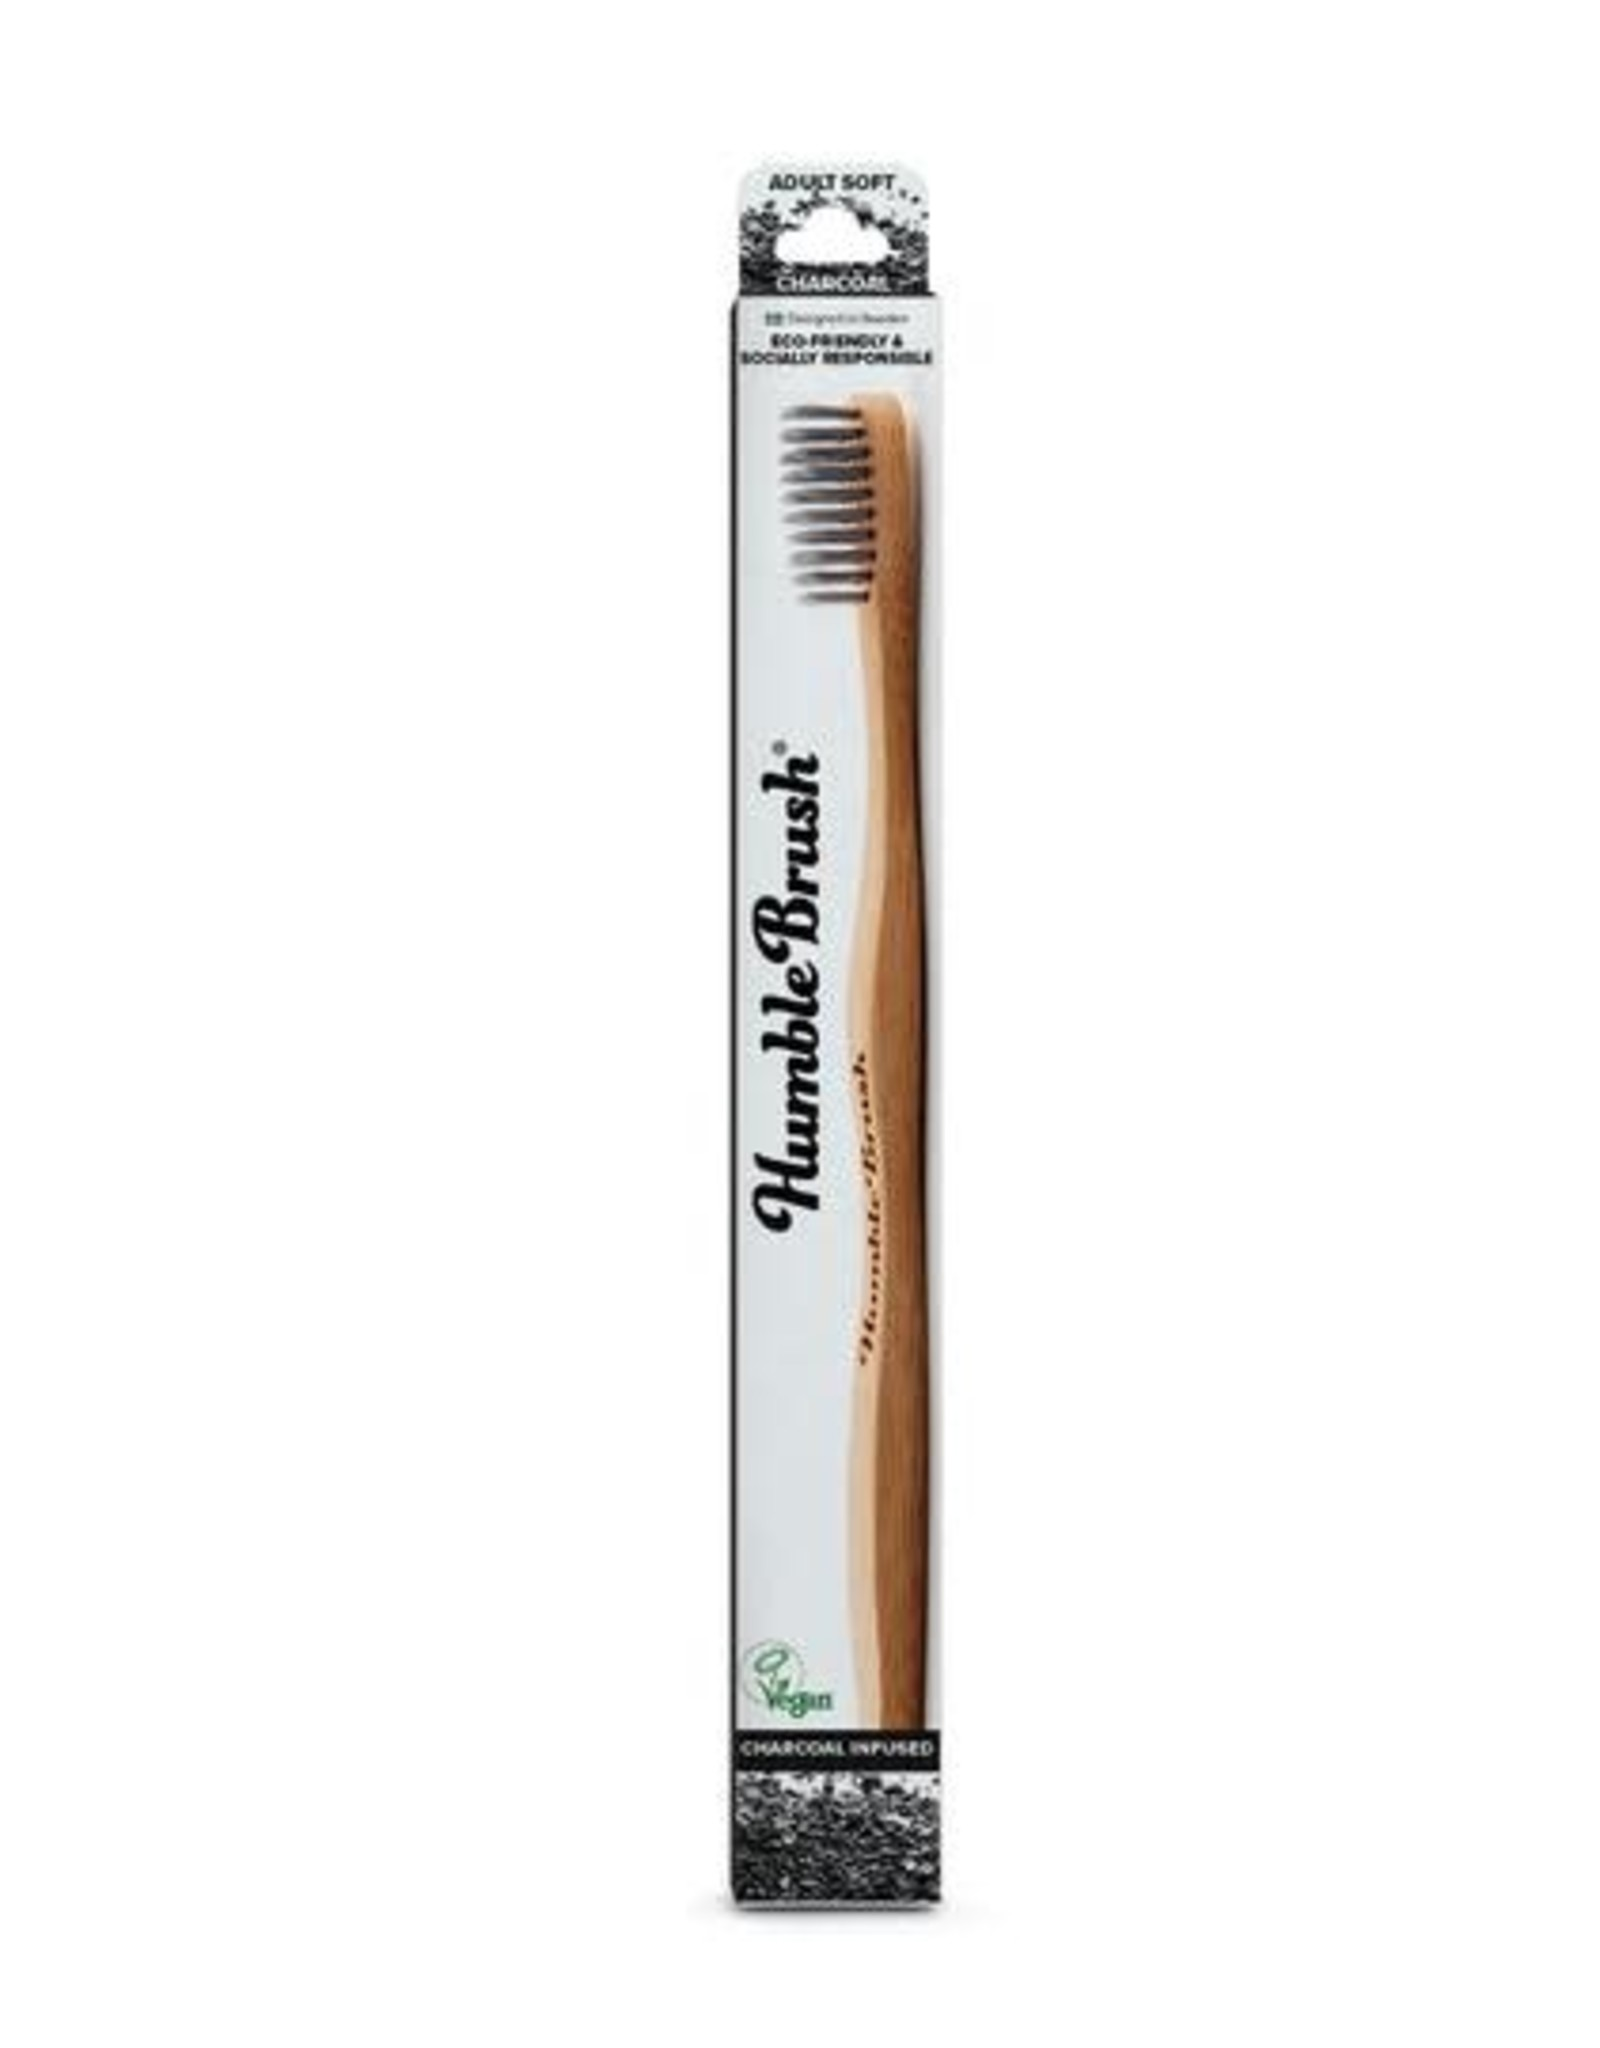 The Humble Co. Humble Brush Toothbrush Charcoal Infused Ultra Soft